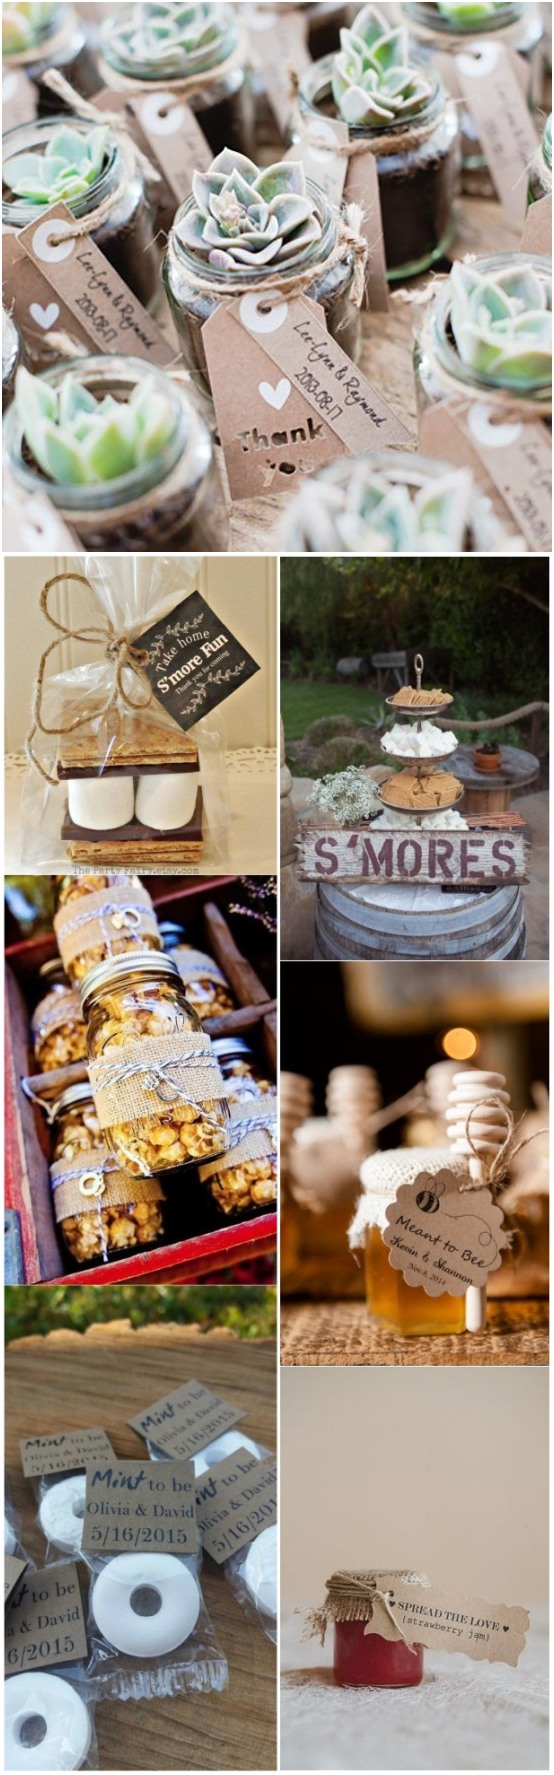 30 rustic wedding theme ideas vintage rustic wedding favor ideas do it yourself solutioingenieria Choice Image